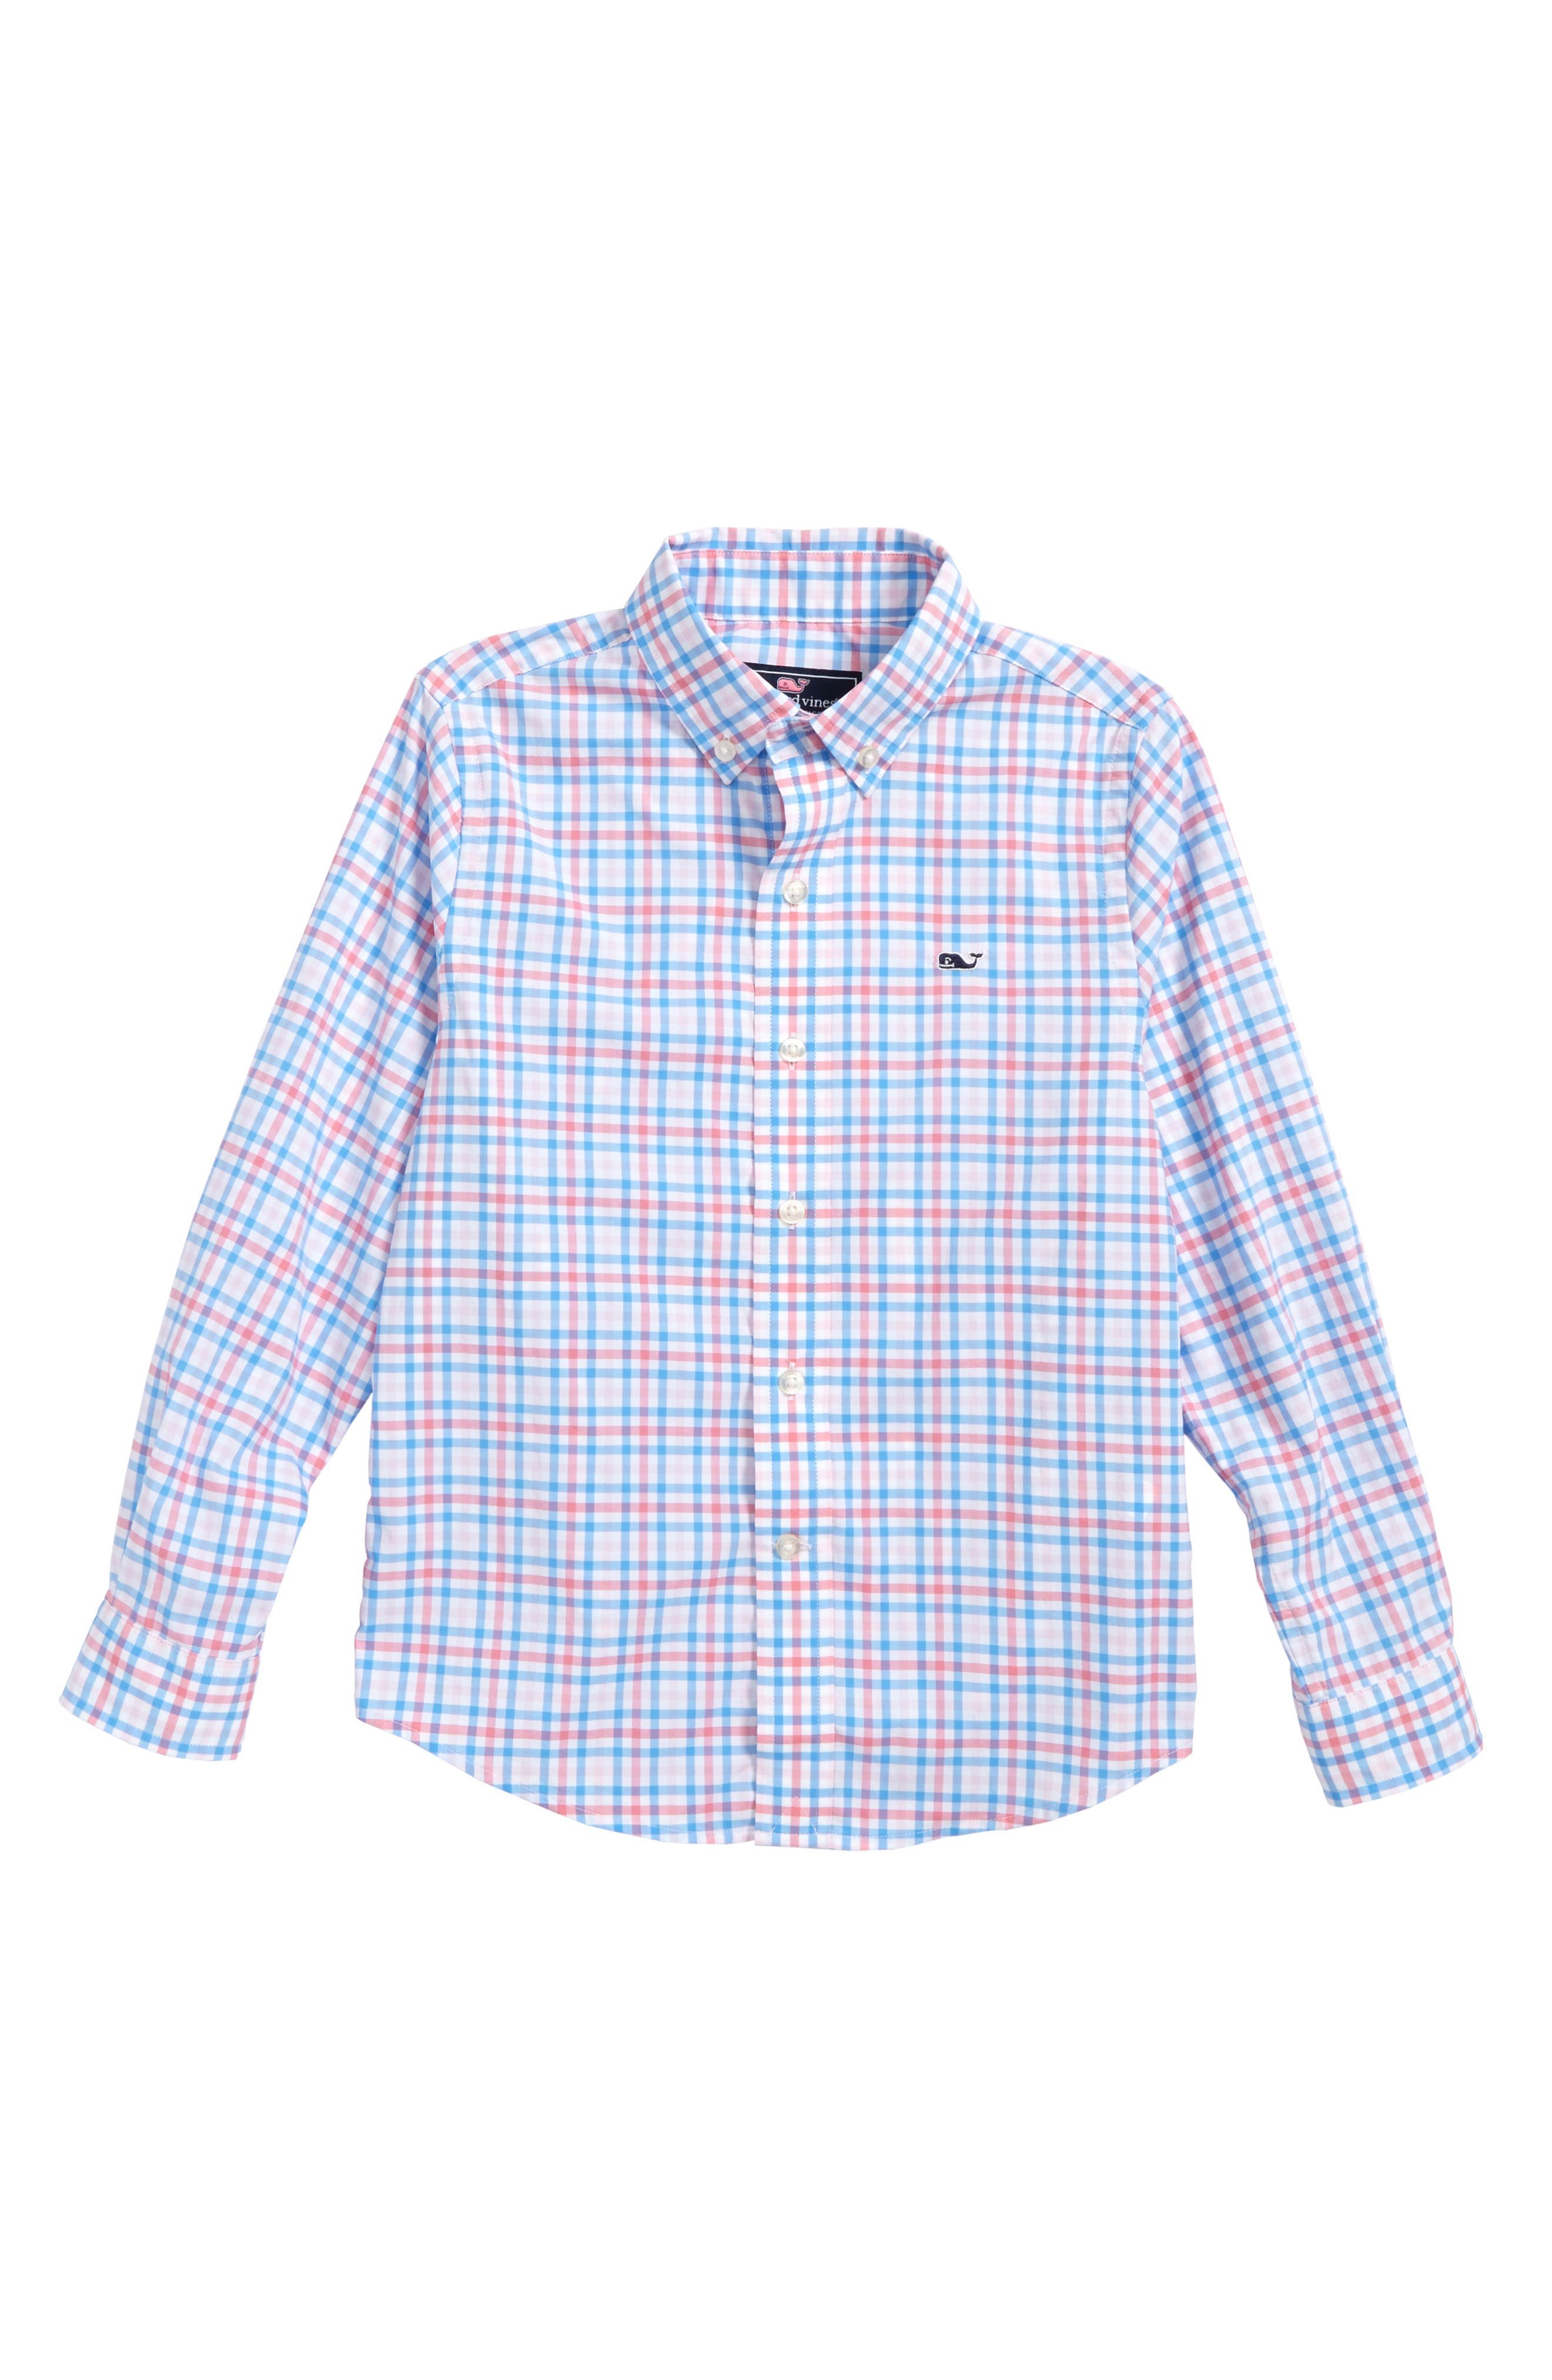 Gulf Shore Gingham Performance Woven Shirt,                         Main,                         color, 400